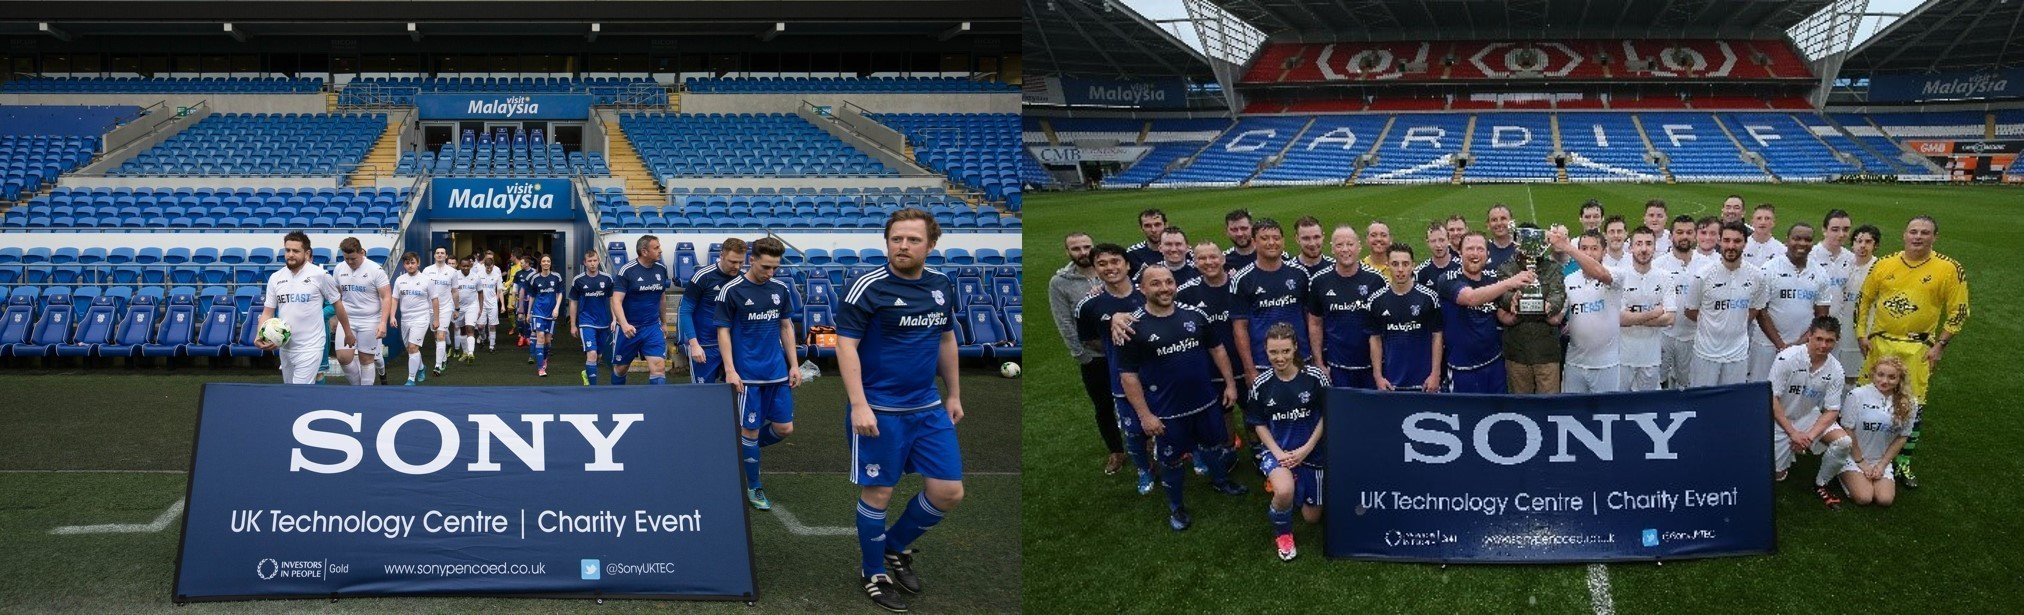 Sony Charity Football match